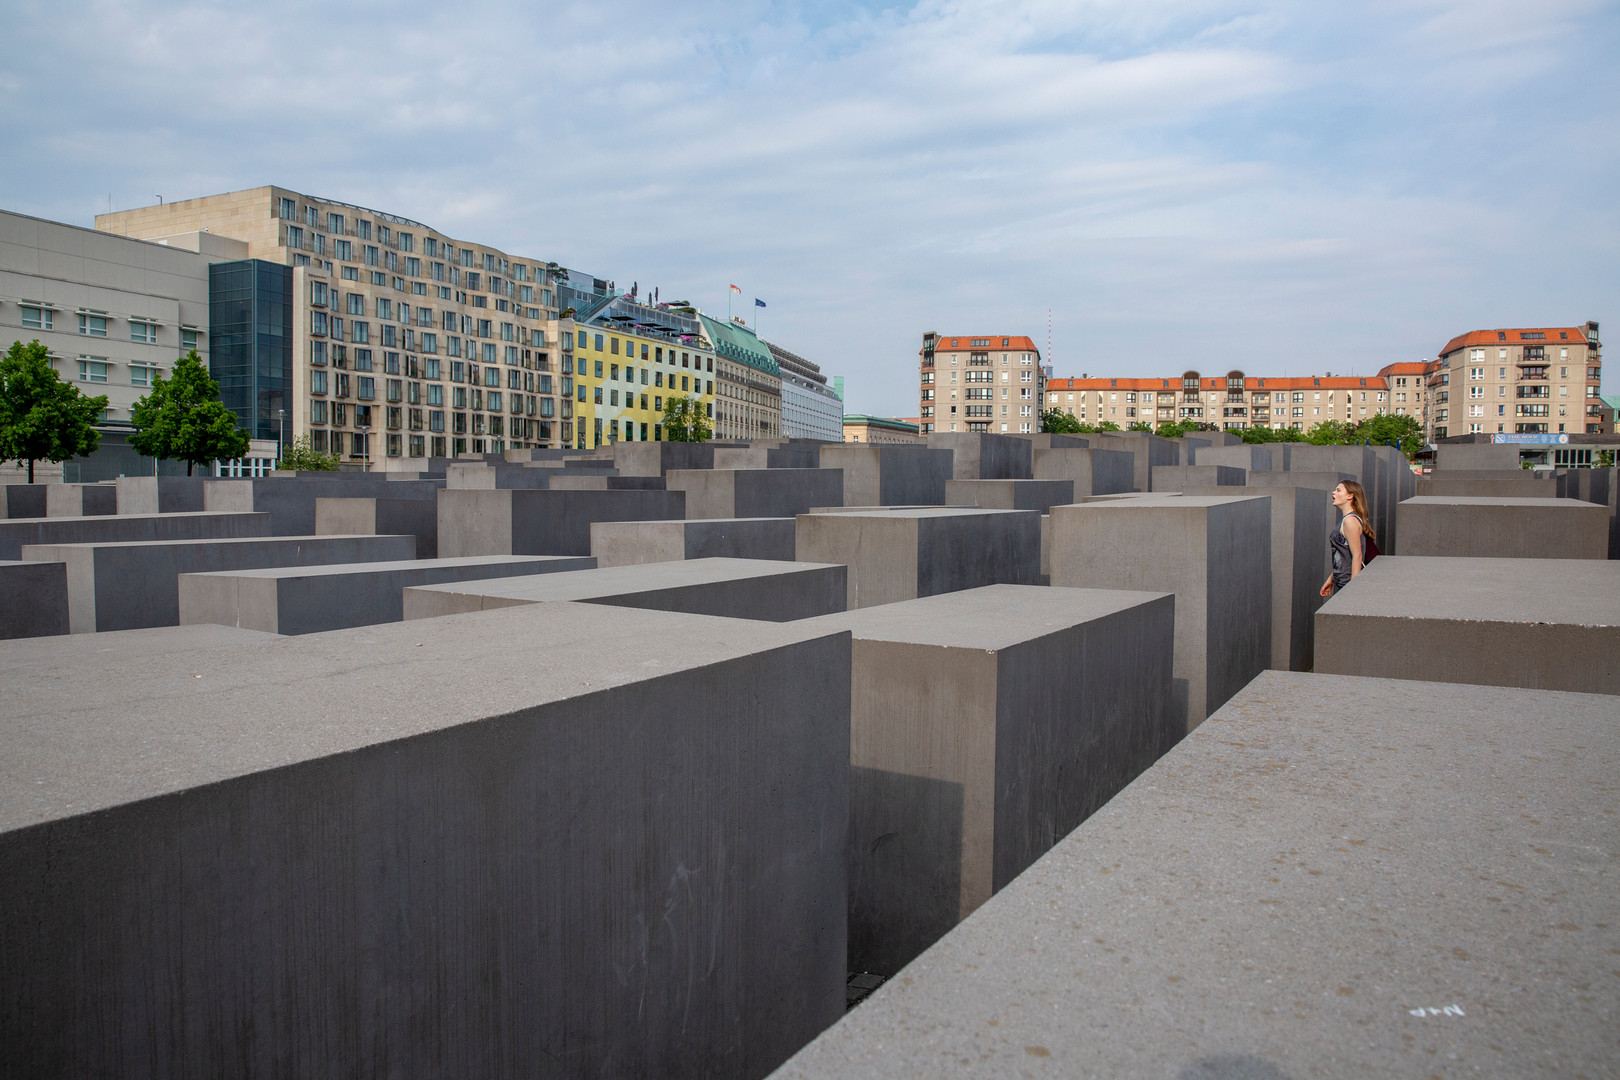 The Memorial to the Murdered Jews of Europe, Berlin